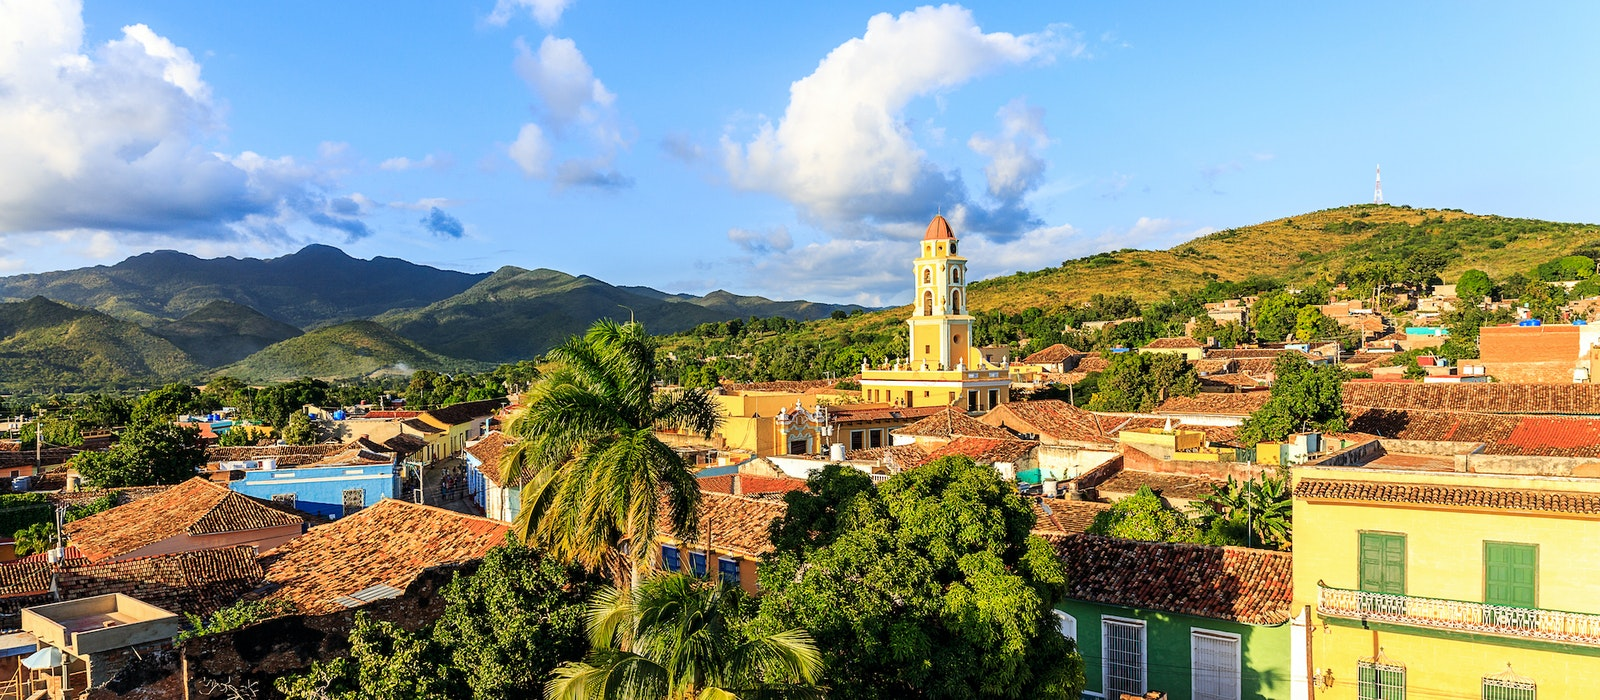 Trinidad is a town in central Cuba known for its colonial-style buildings and cobblestone streets.